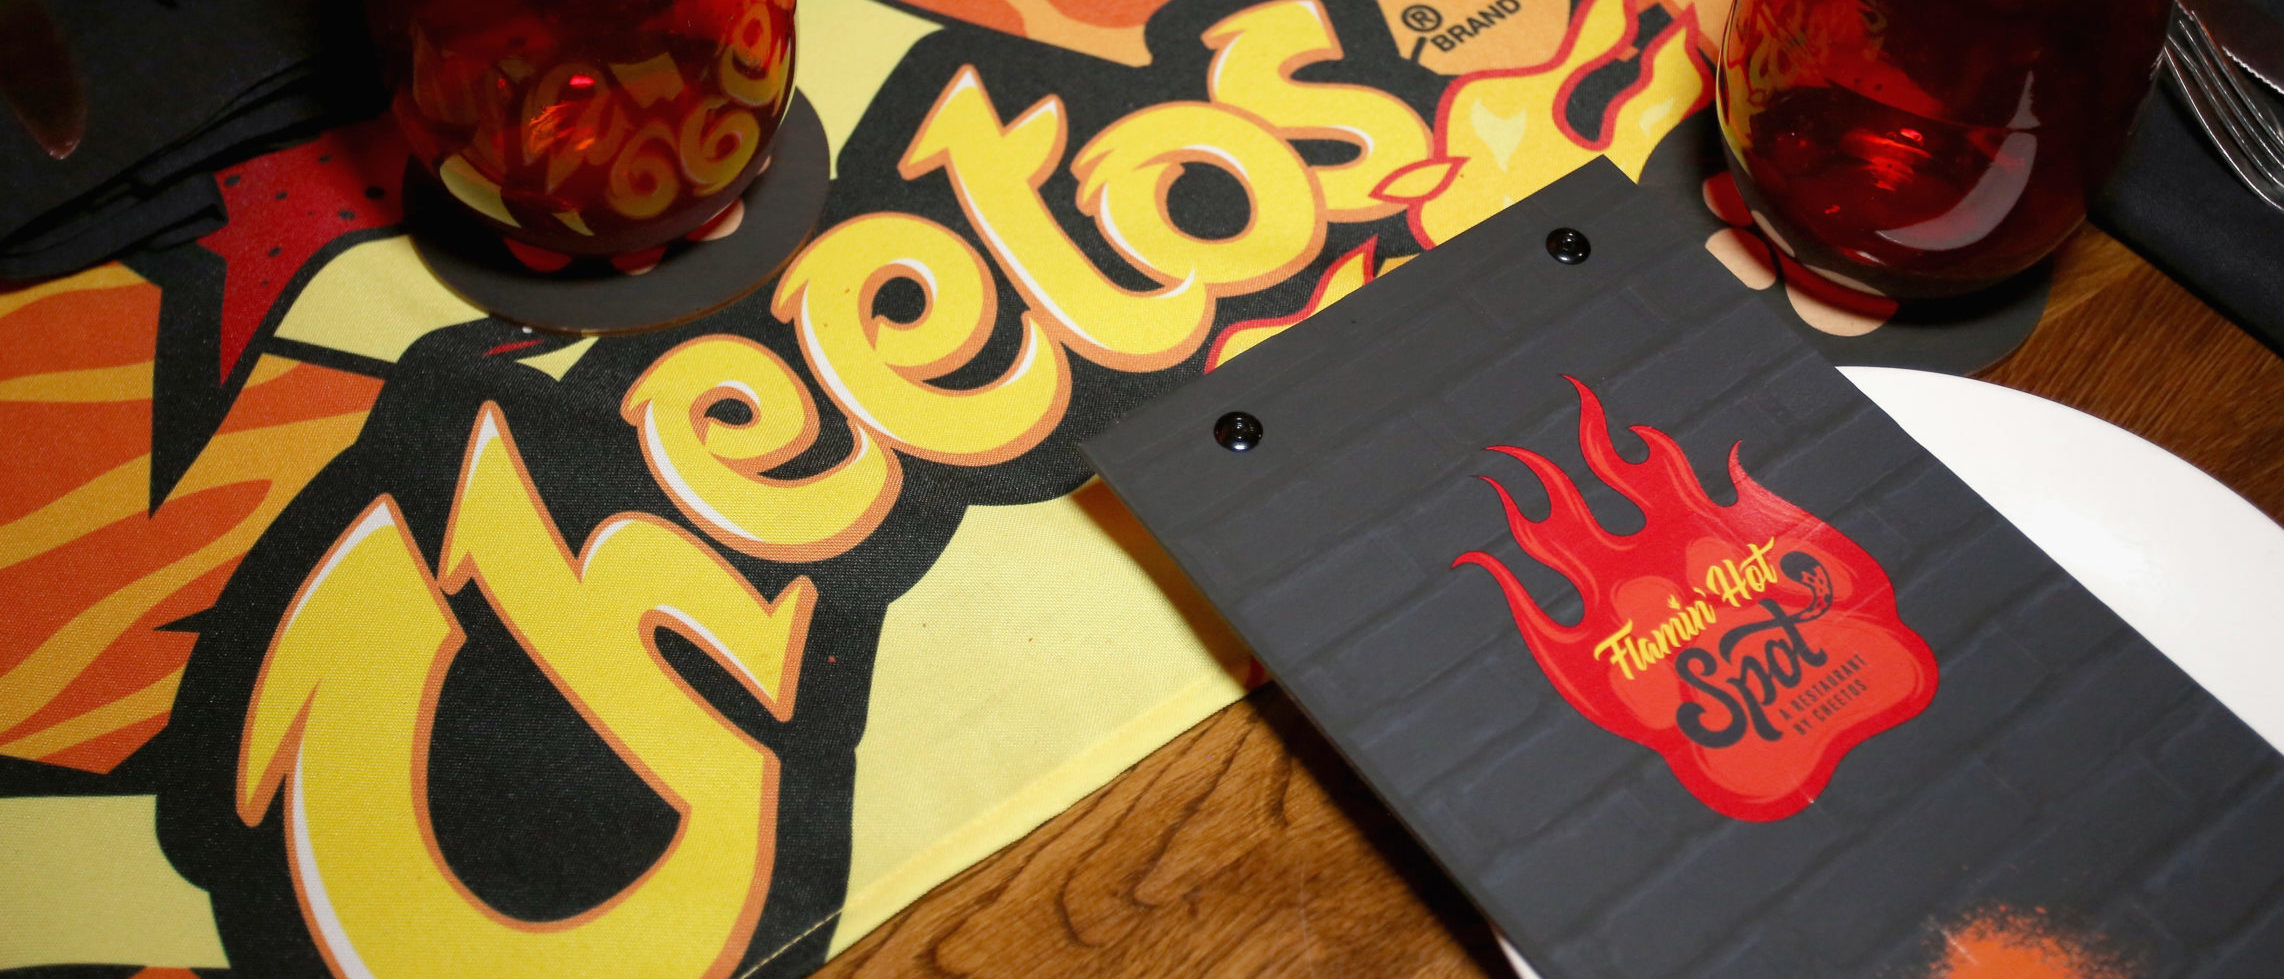 Father Claims Son Found Bullet In Bag Of Flaming Hot Cheetos